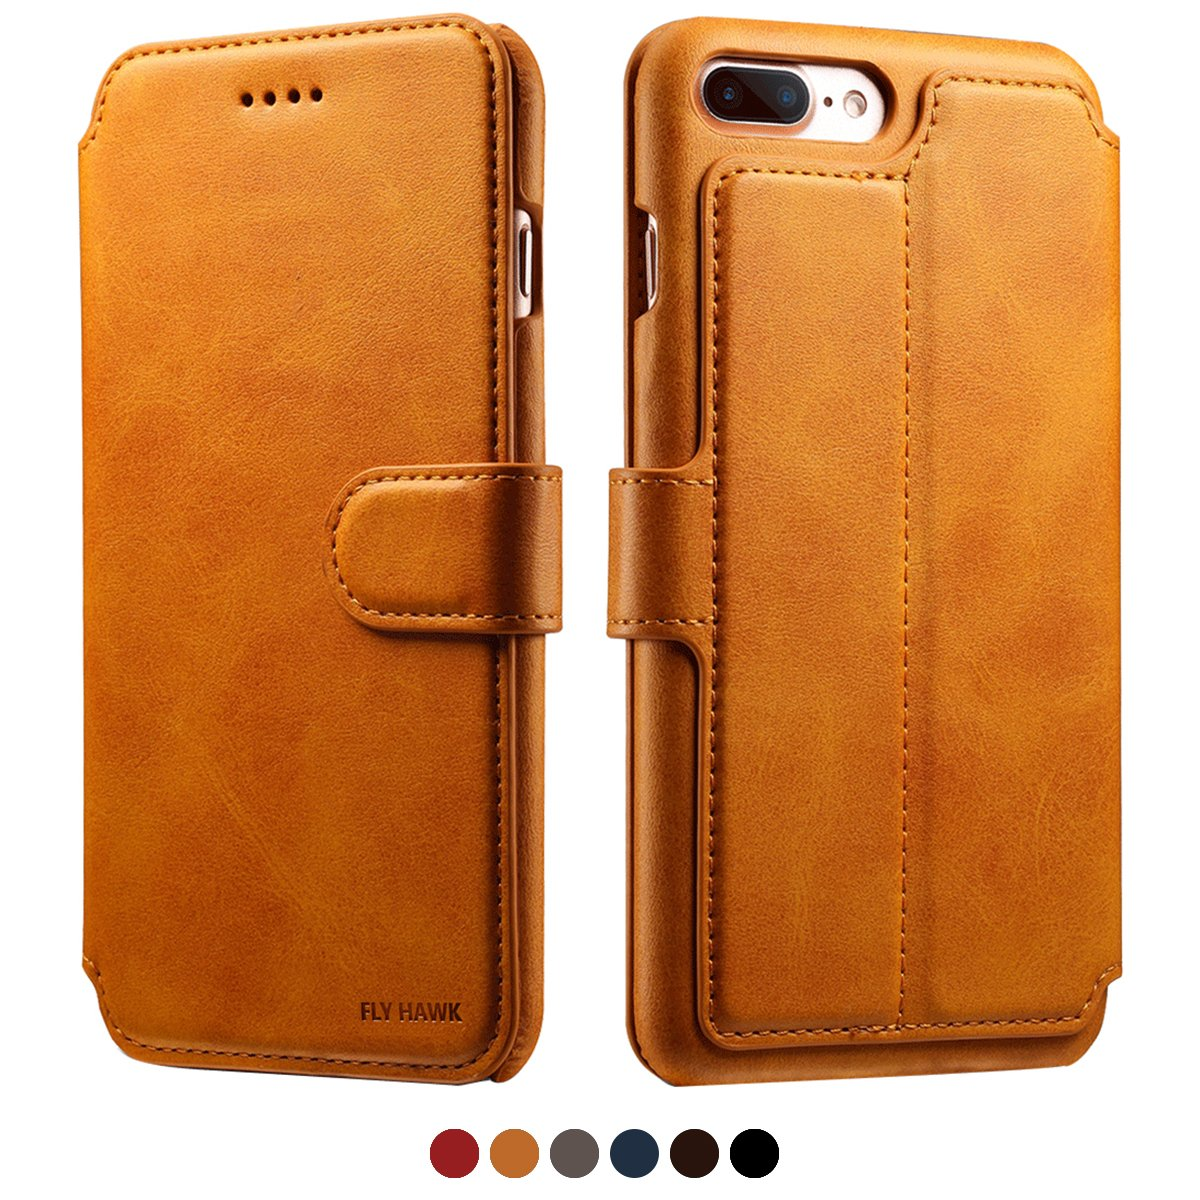 Leather Wallet Case with Card Slots iPhone 8 Plus Blue Flip Slim Shockproof Cover